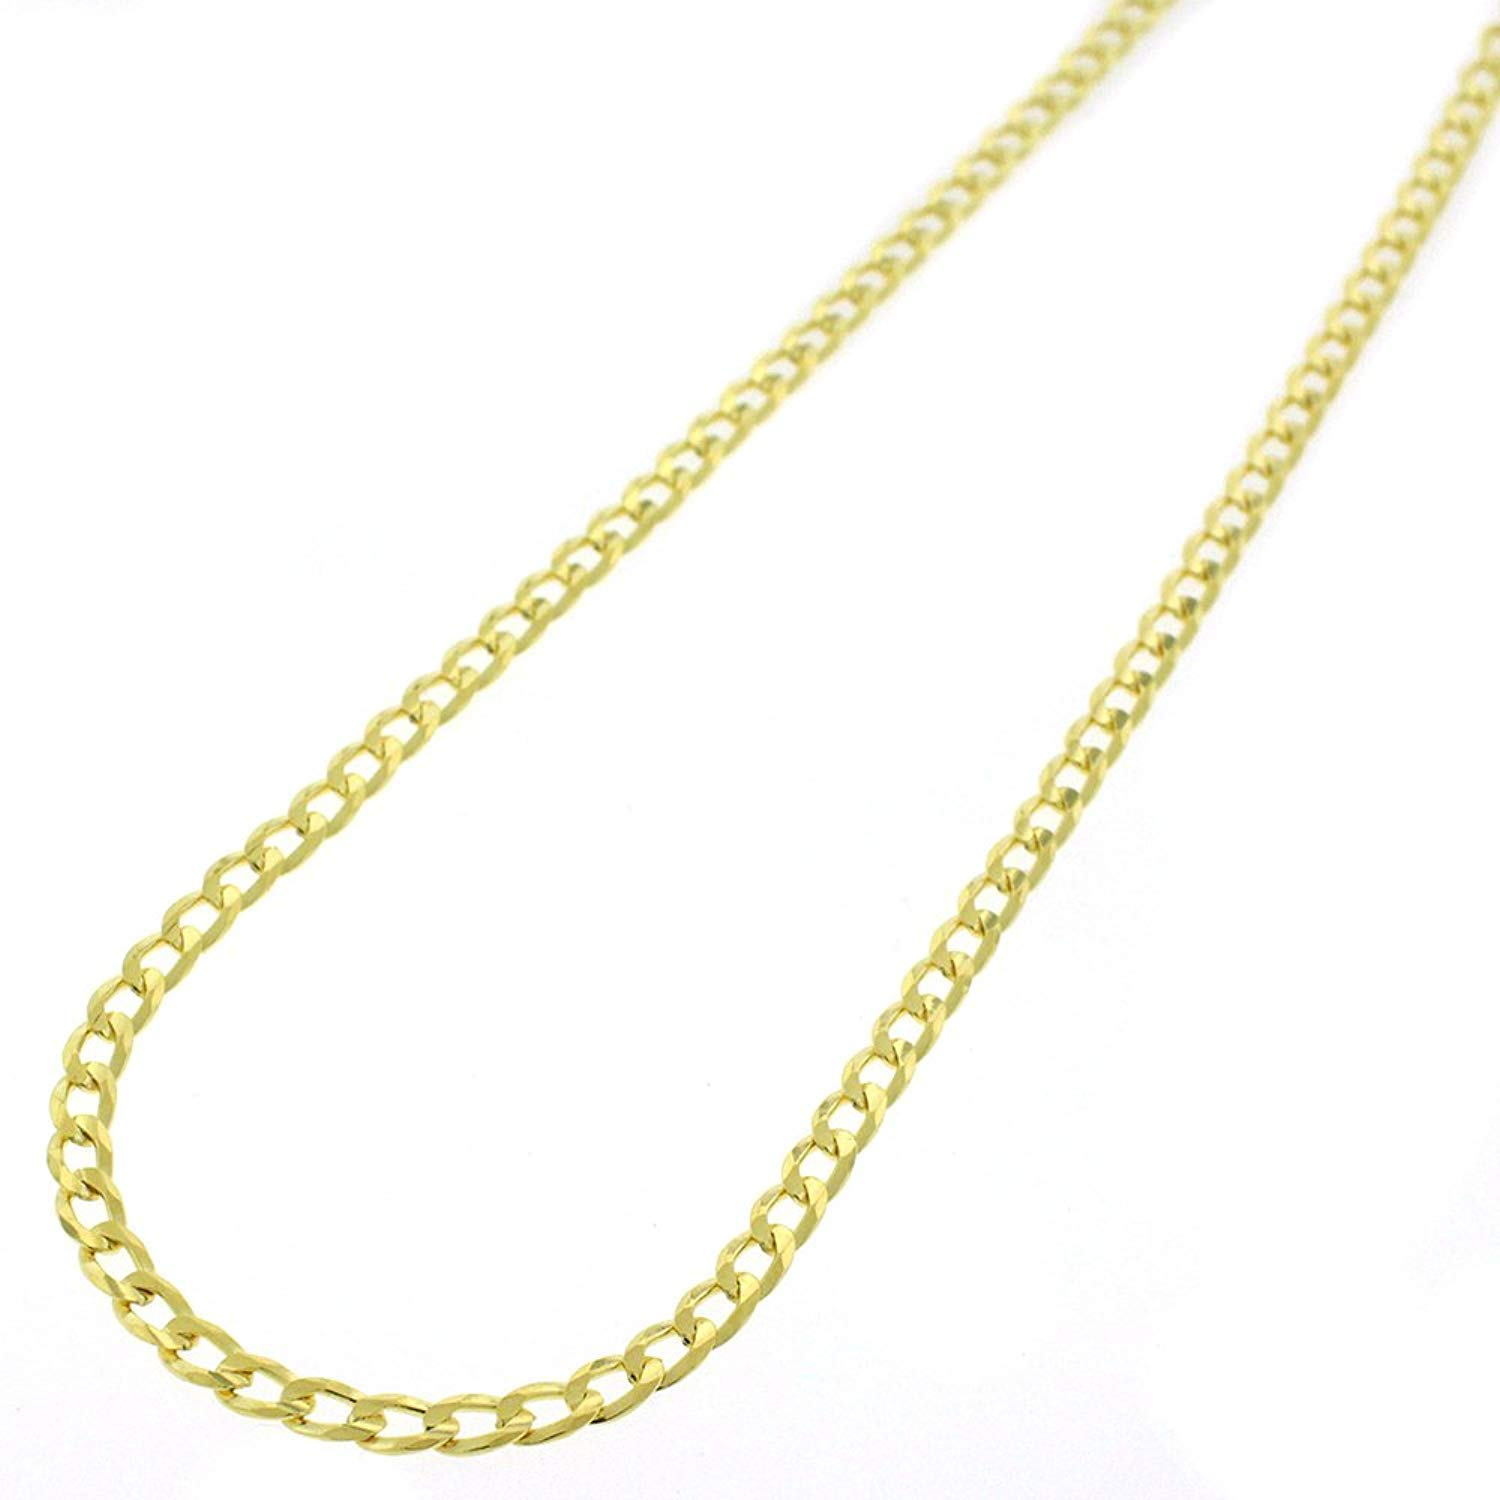 Sterling Silver Italian 3mm Cuban Curb Link ITProLux Solid 925 Yellow Gold Plated Necklace Chain 16'' - 30'' (26)